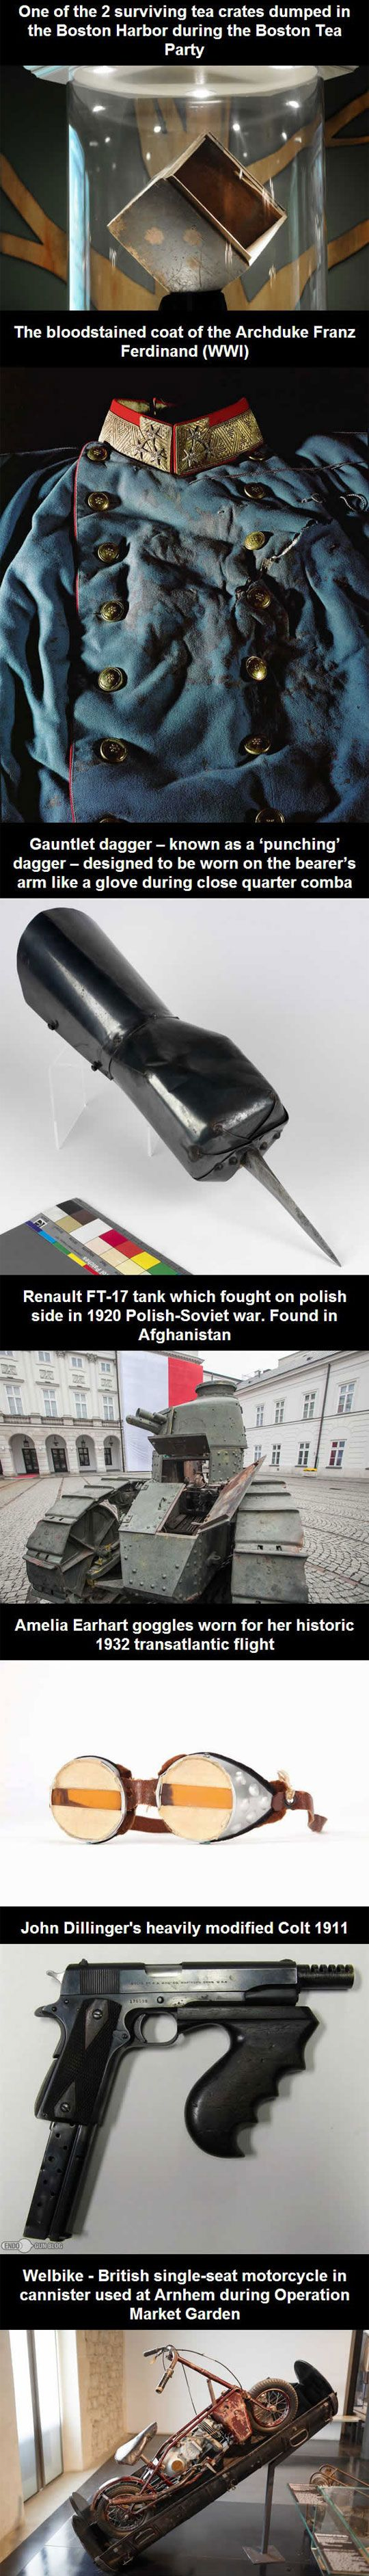 These Objects Really Changed History